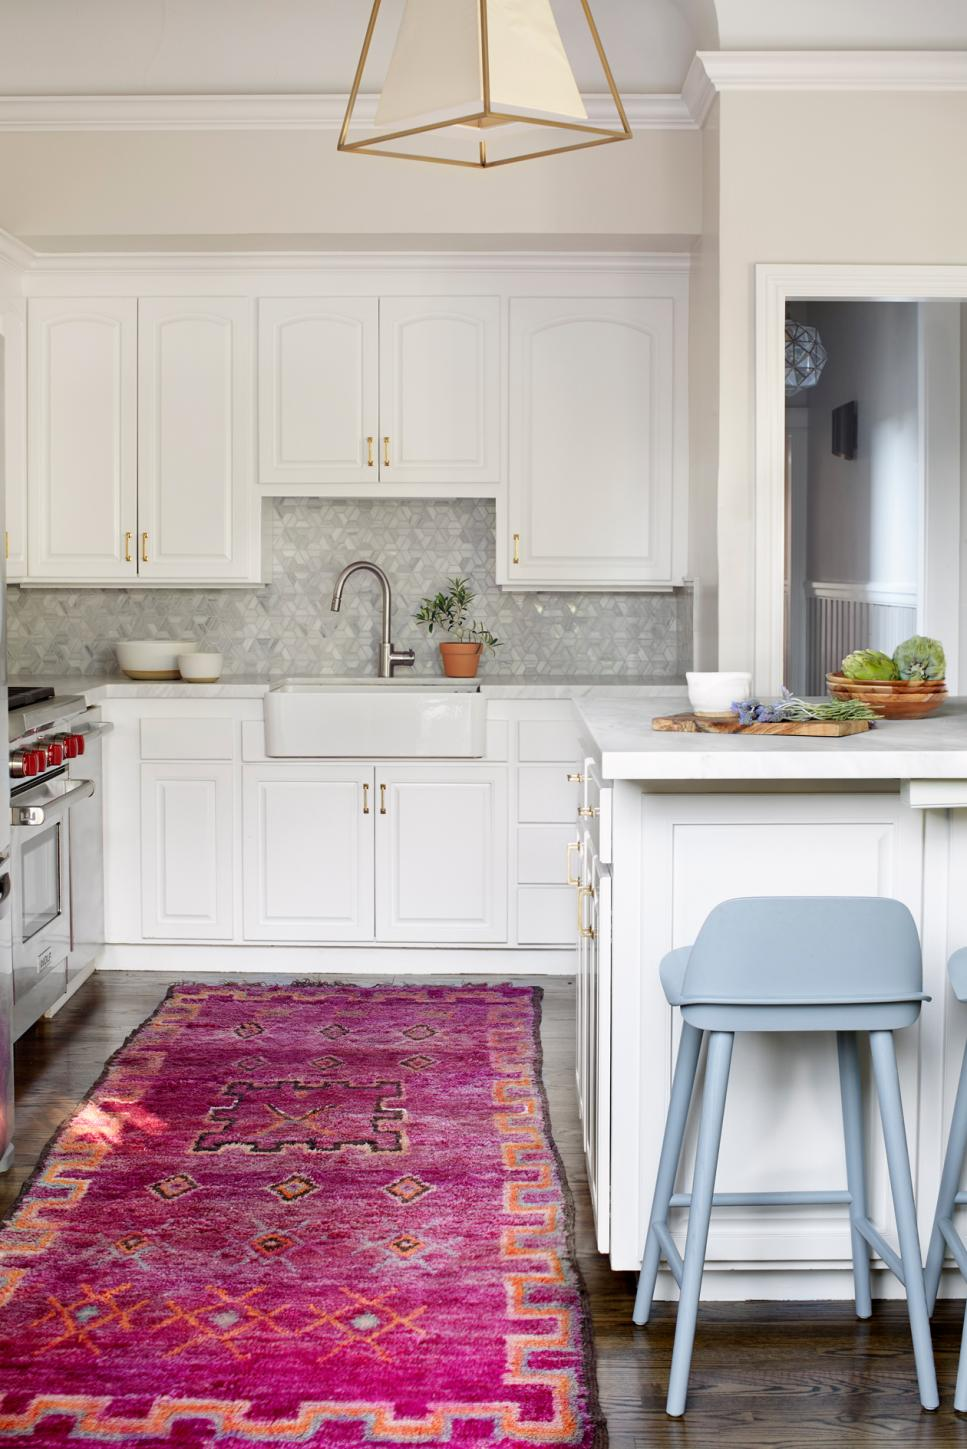 Transitional Kitchen With Farmhouse Sink and Pink Rug